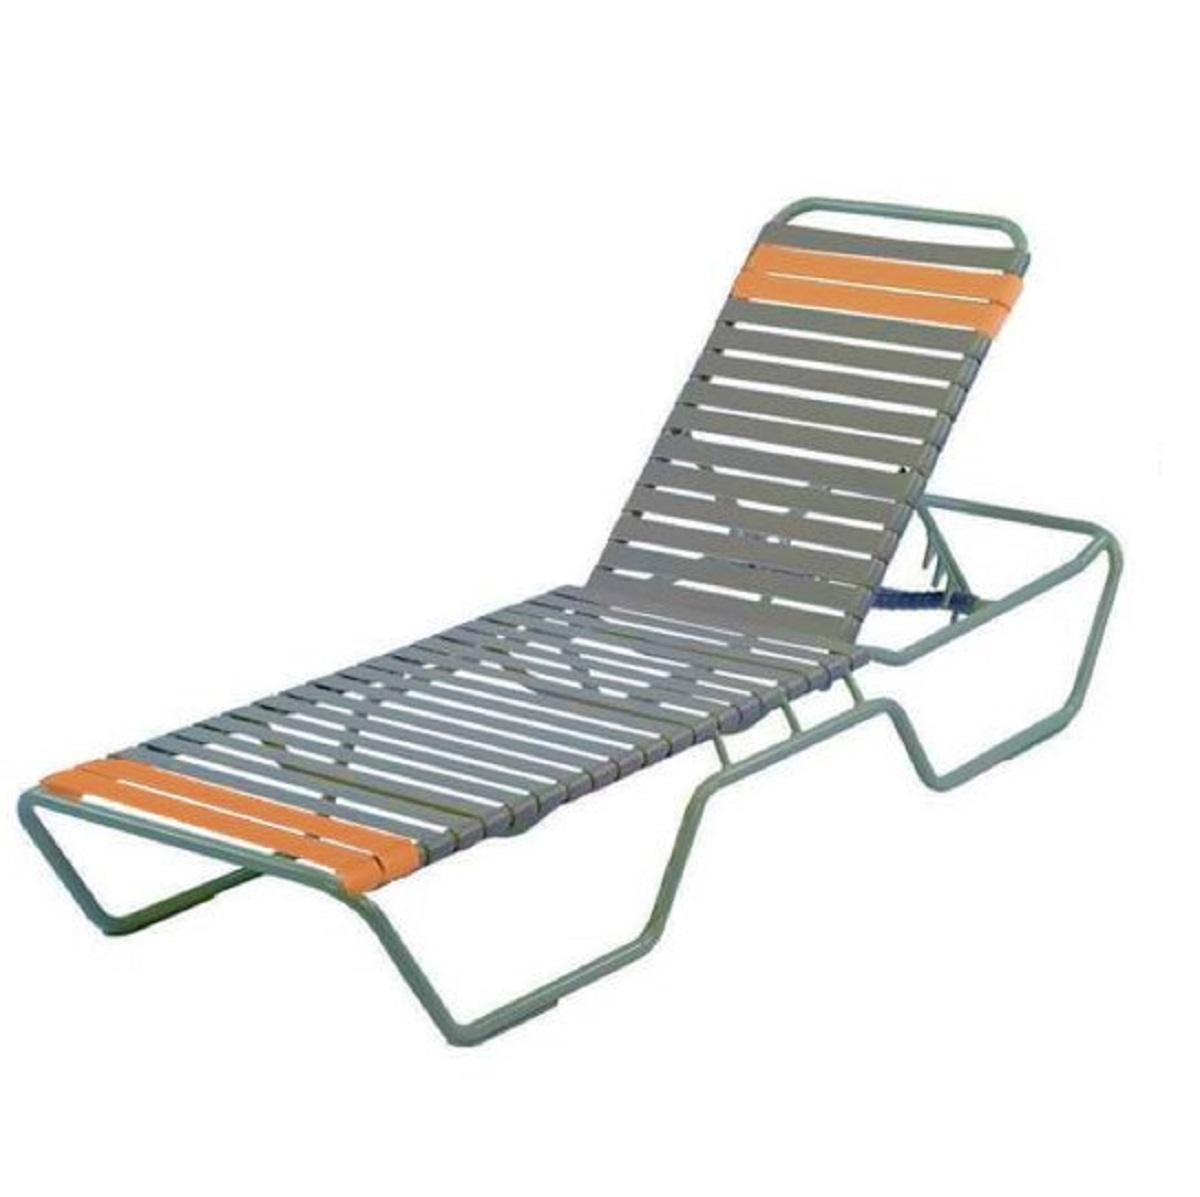 Country Club Beach Concession vinyl strap Chaise Lounge